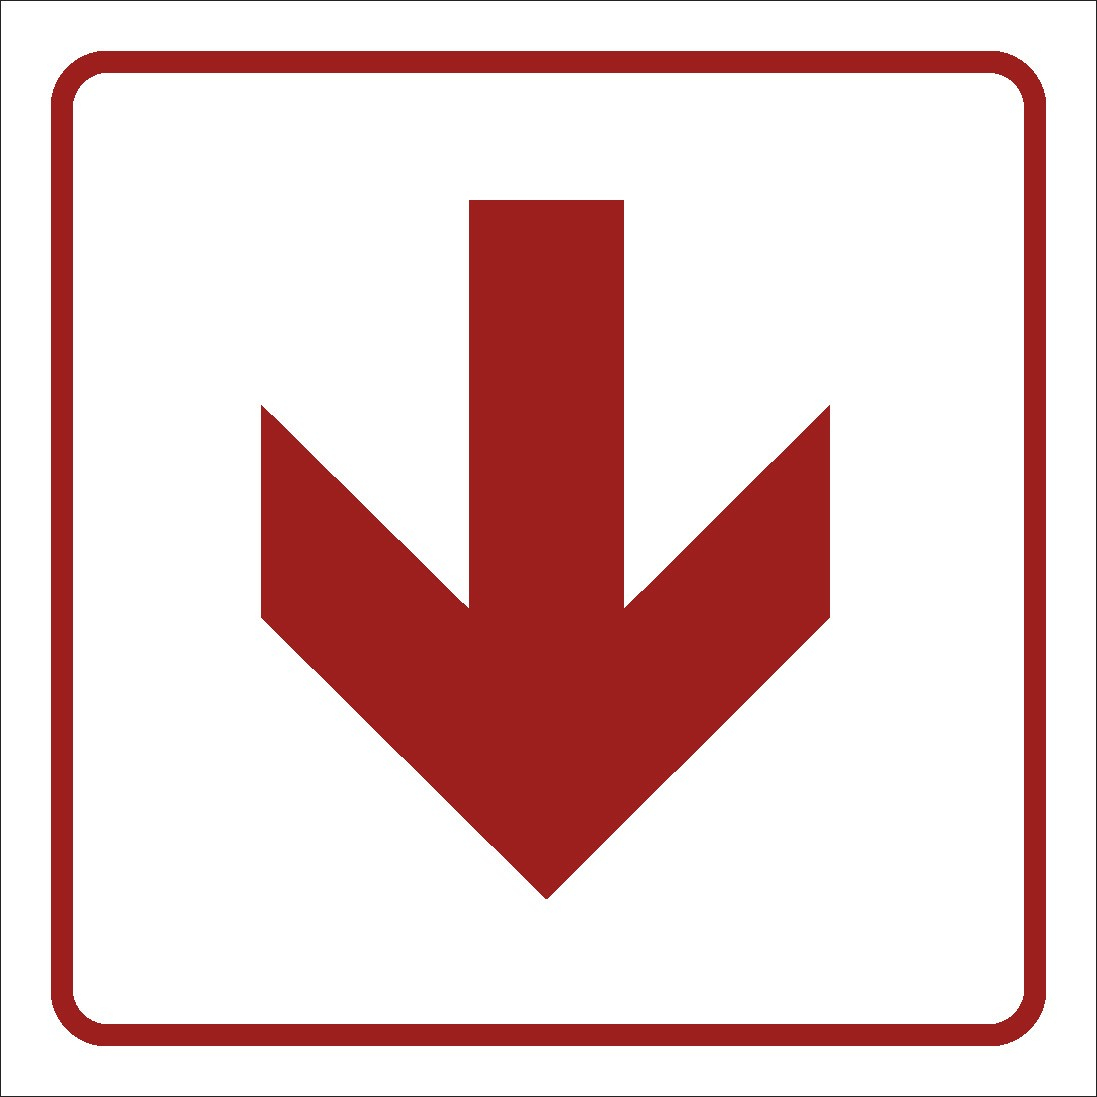 Free Safety Signs To Download And Print At Signs4Less. We Like To - Free Printable Safety Signs